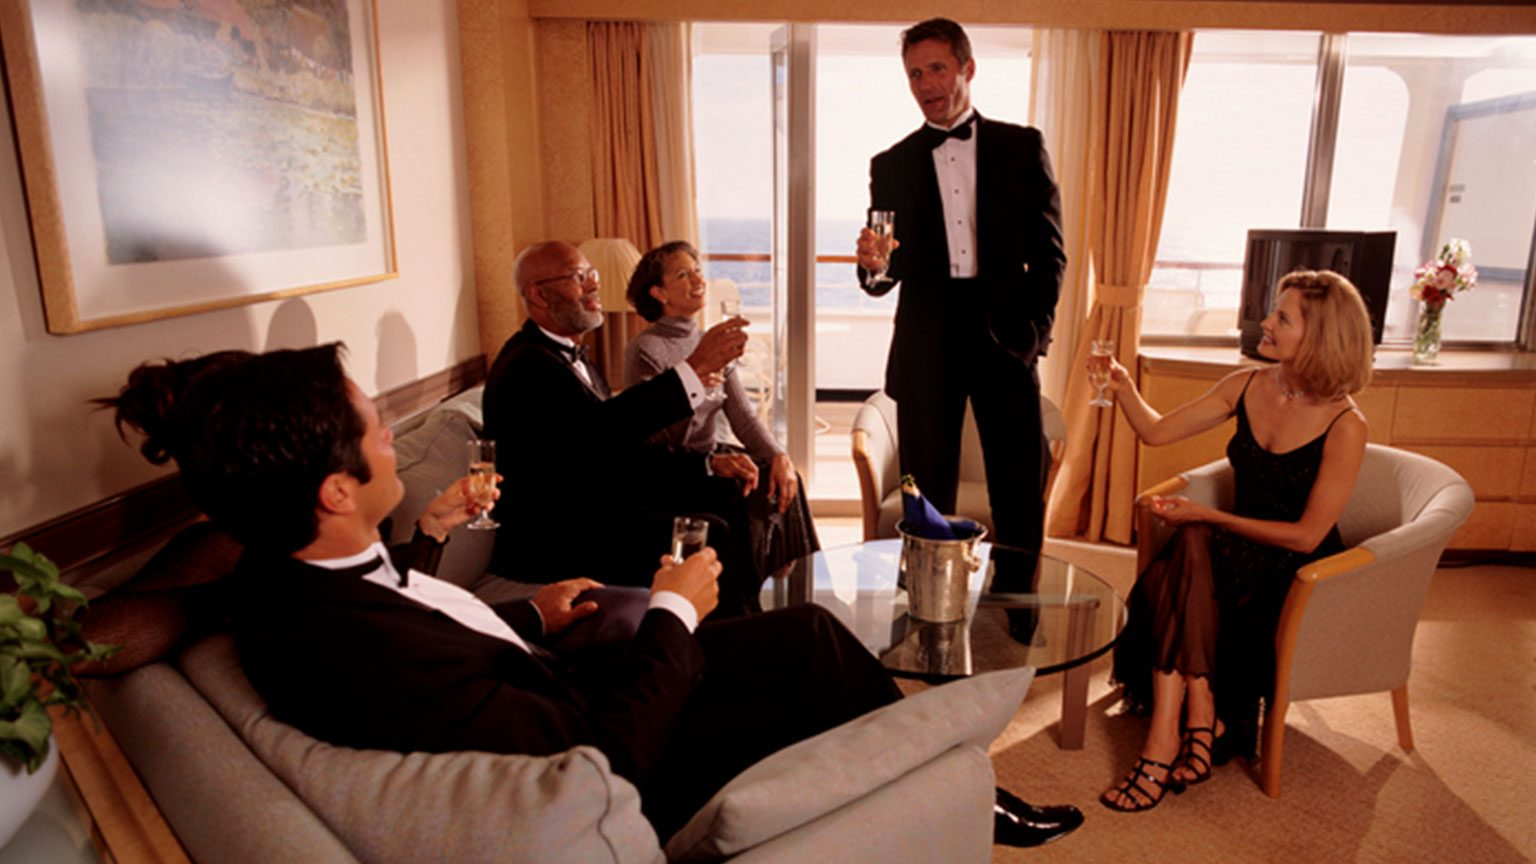 Group of friends in formal wear enjoying champagne in luxury cabin on a cruise ship